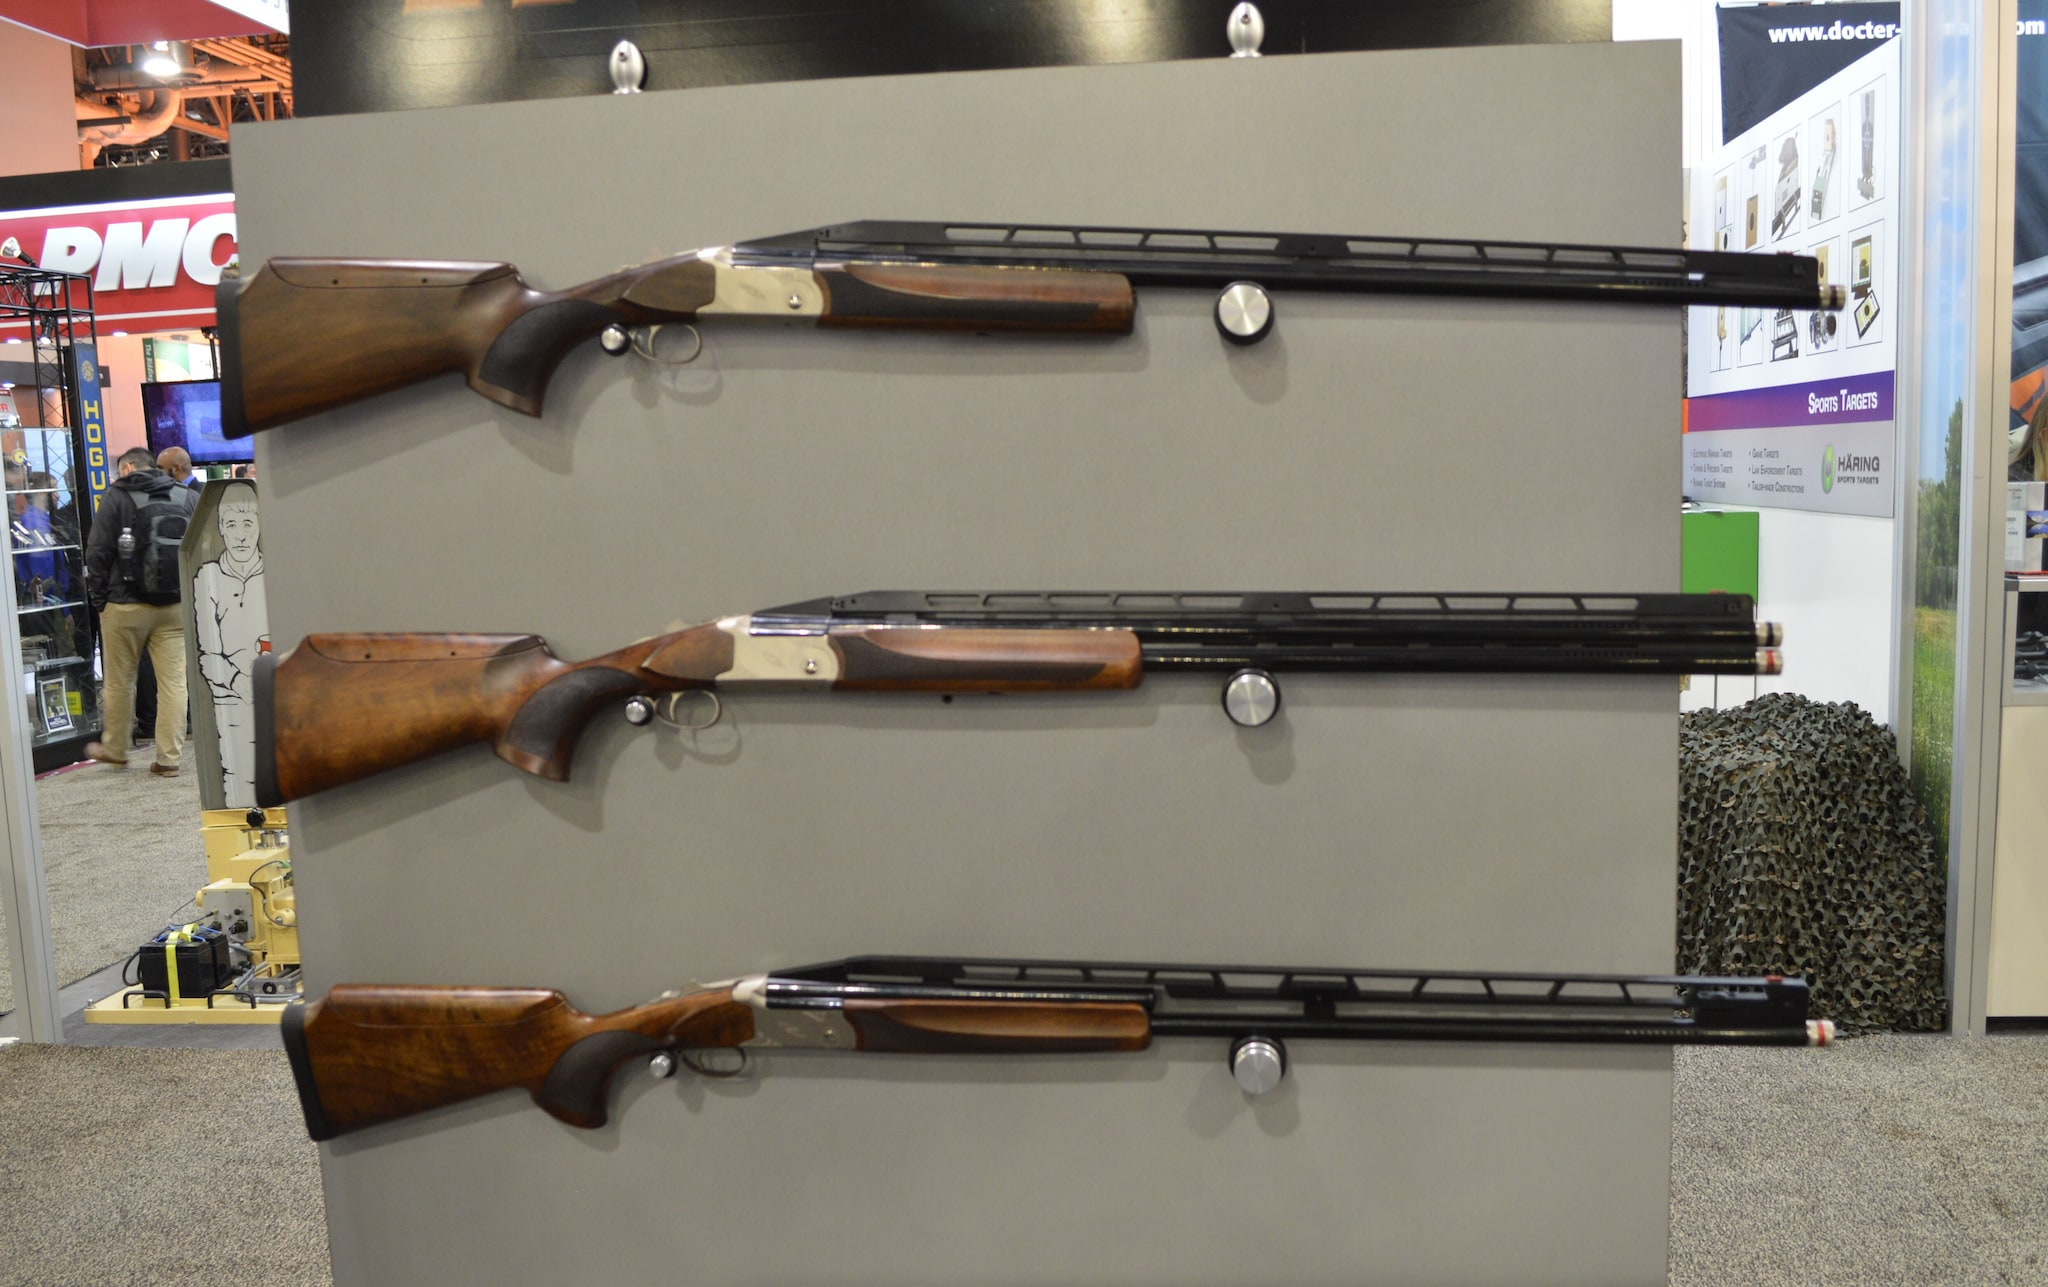 TriStar's new-for-2016 TT-15 Trap guns: top single, unsingle, double trap, and an available combo set